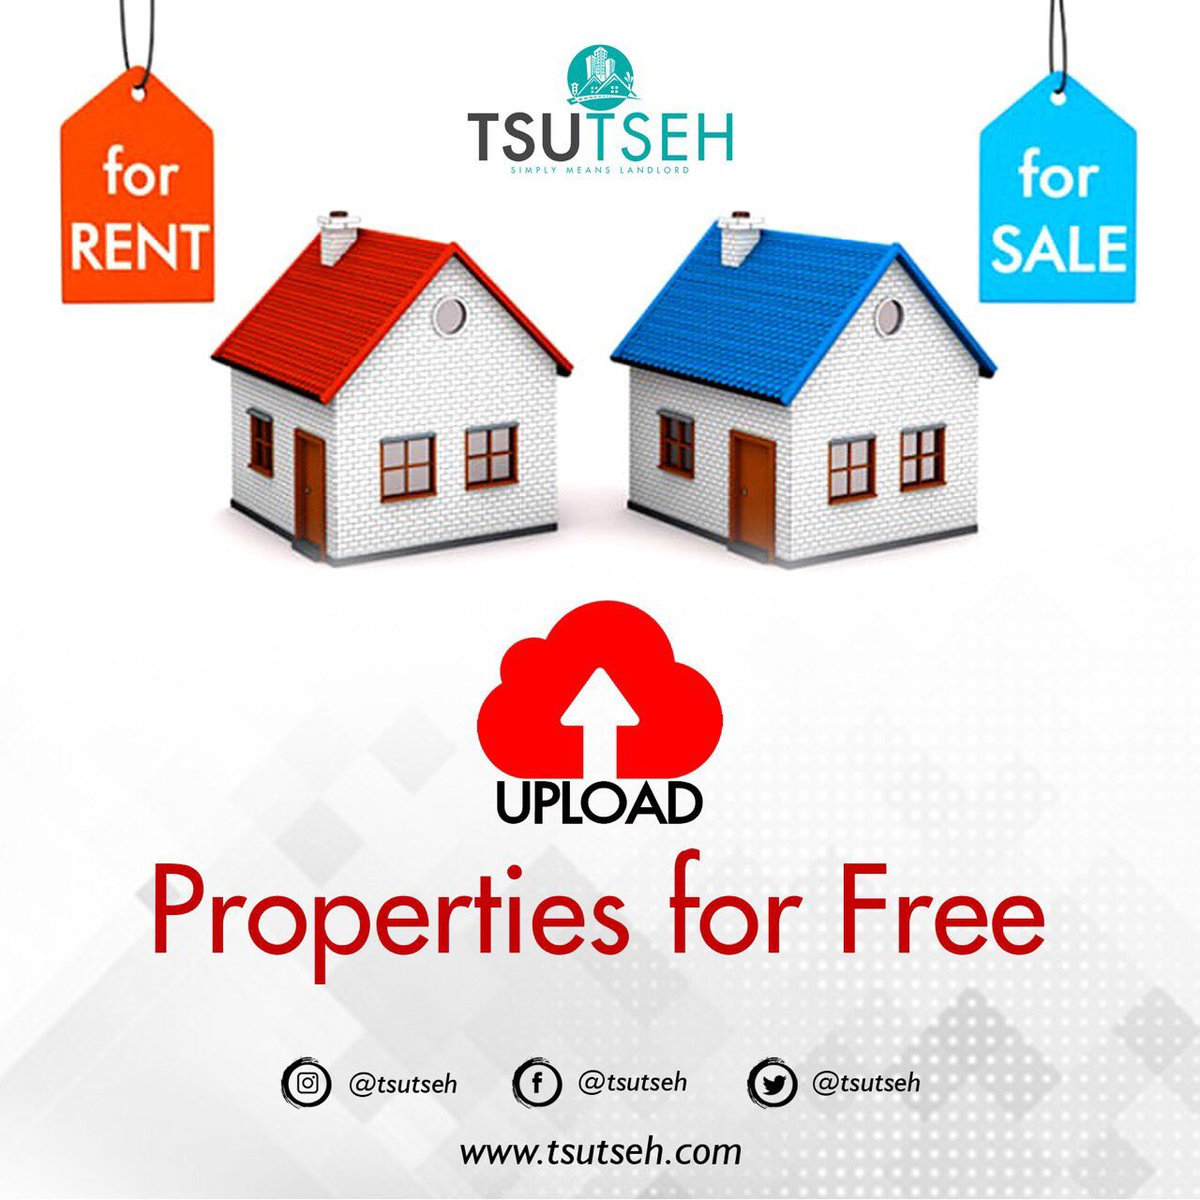 Upload your properties for FREE and let your tenants rent them online. #tsutseh #trend #trending #viral #ghana #accra #rent #properties #forsale #houseforrent #house #wedding #forrent #7COMEBACKSPECIAL #AGis60 #YearOfReturn #homesforsale #home